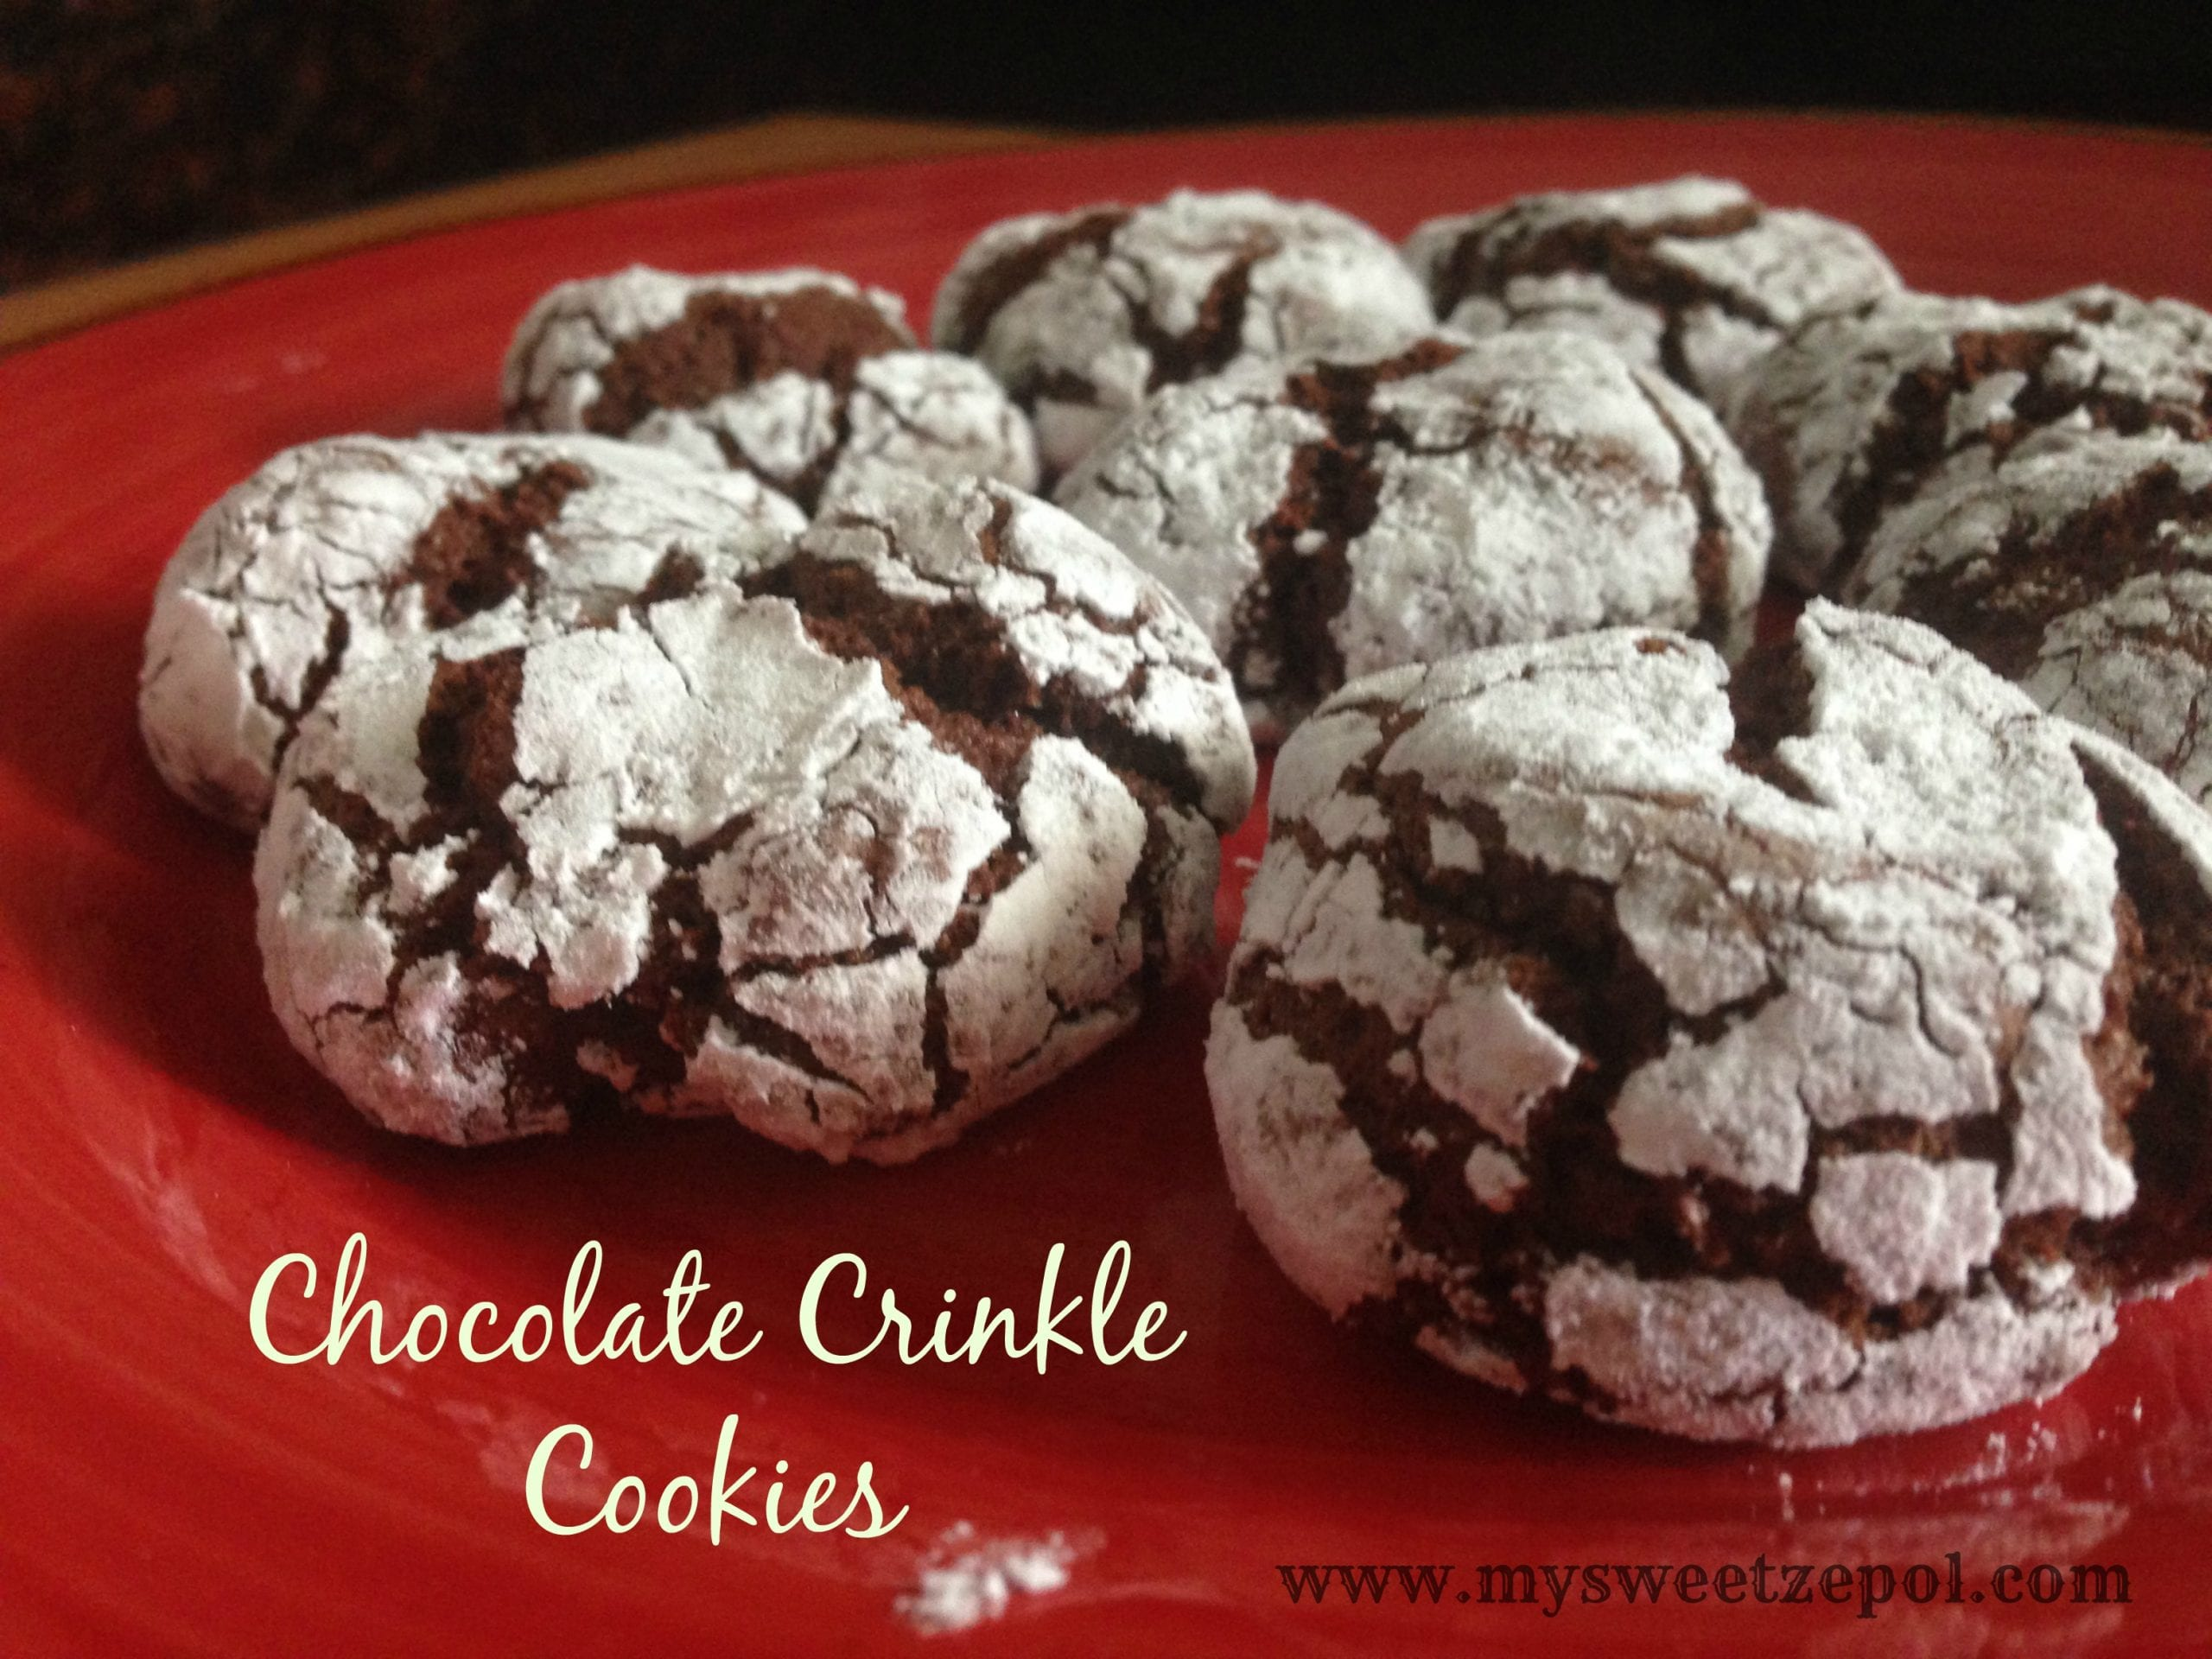 Mocha crinkles cookie recipe - Food for health recipes